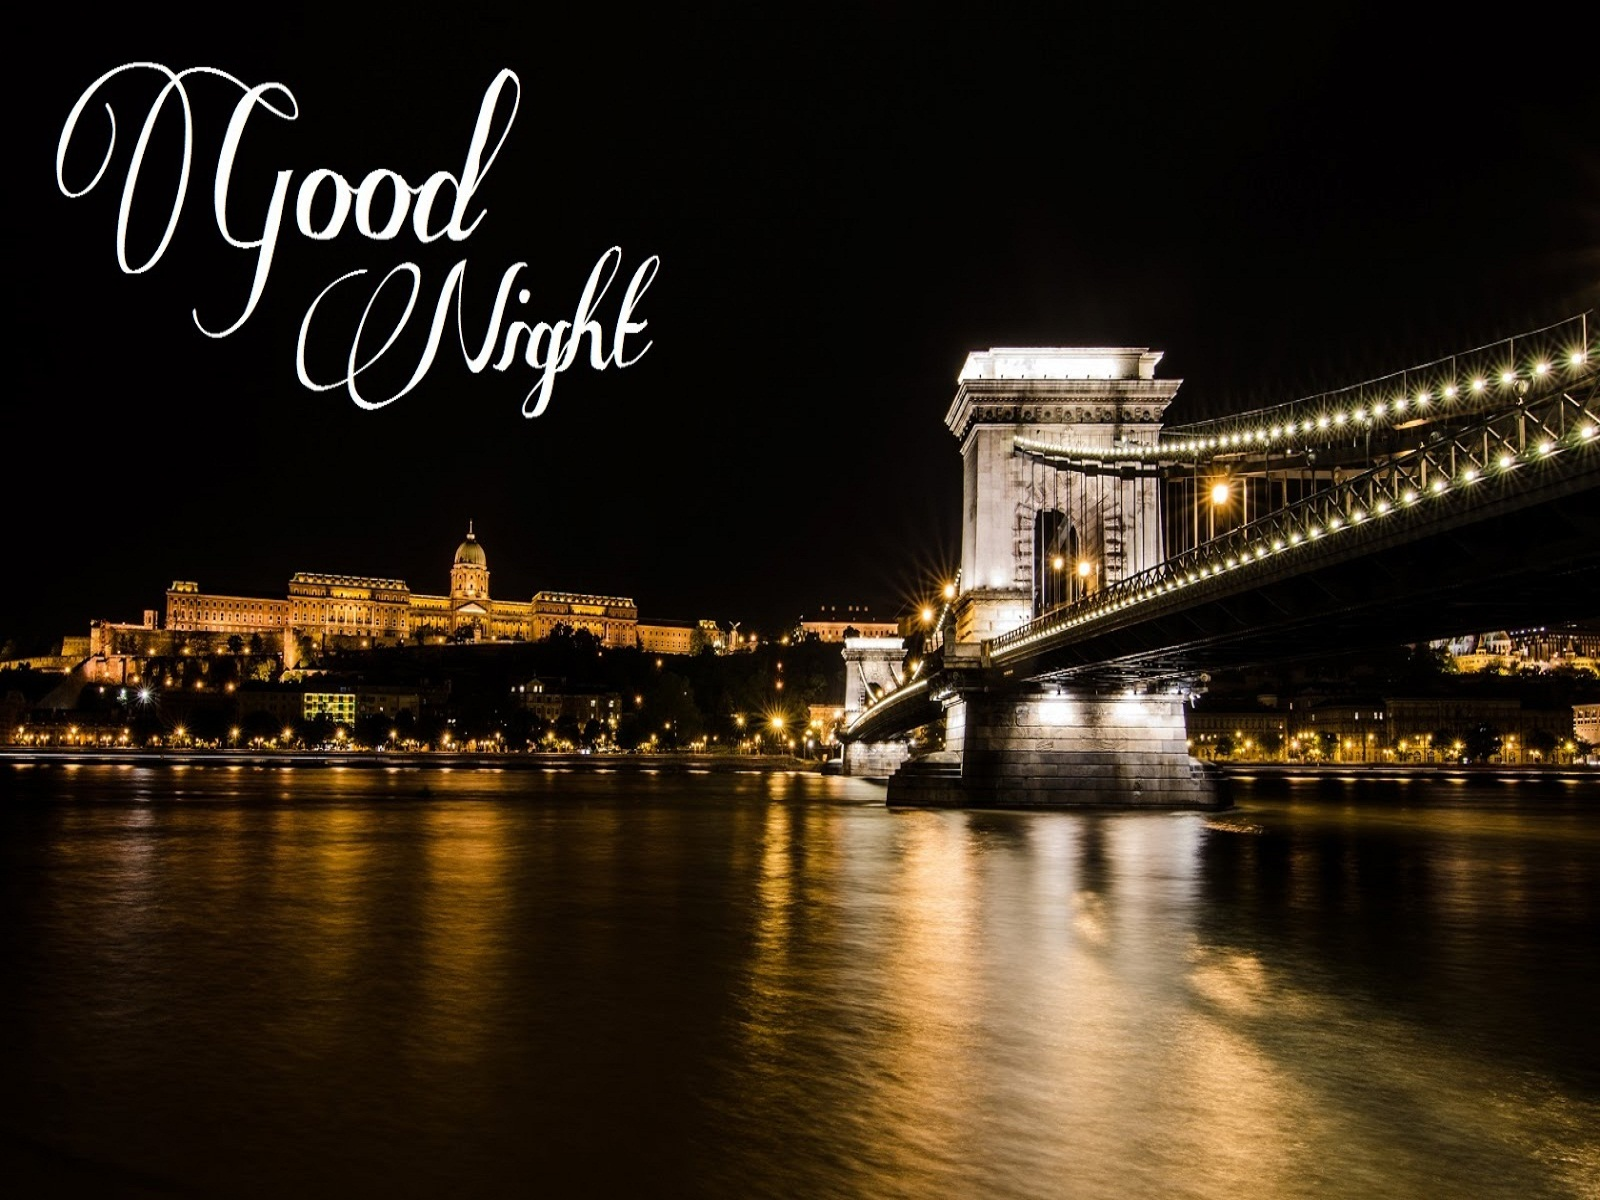 Good night best hd wallpapers free download voltagebd Choice Image